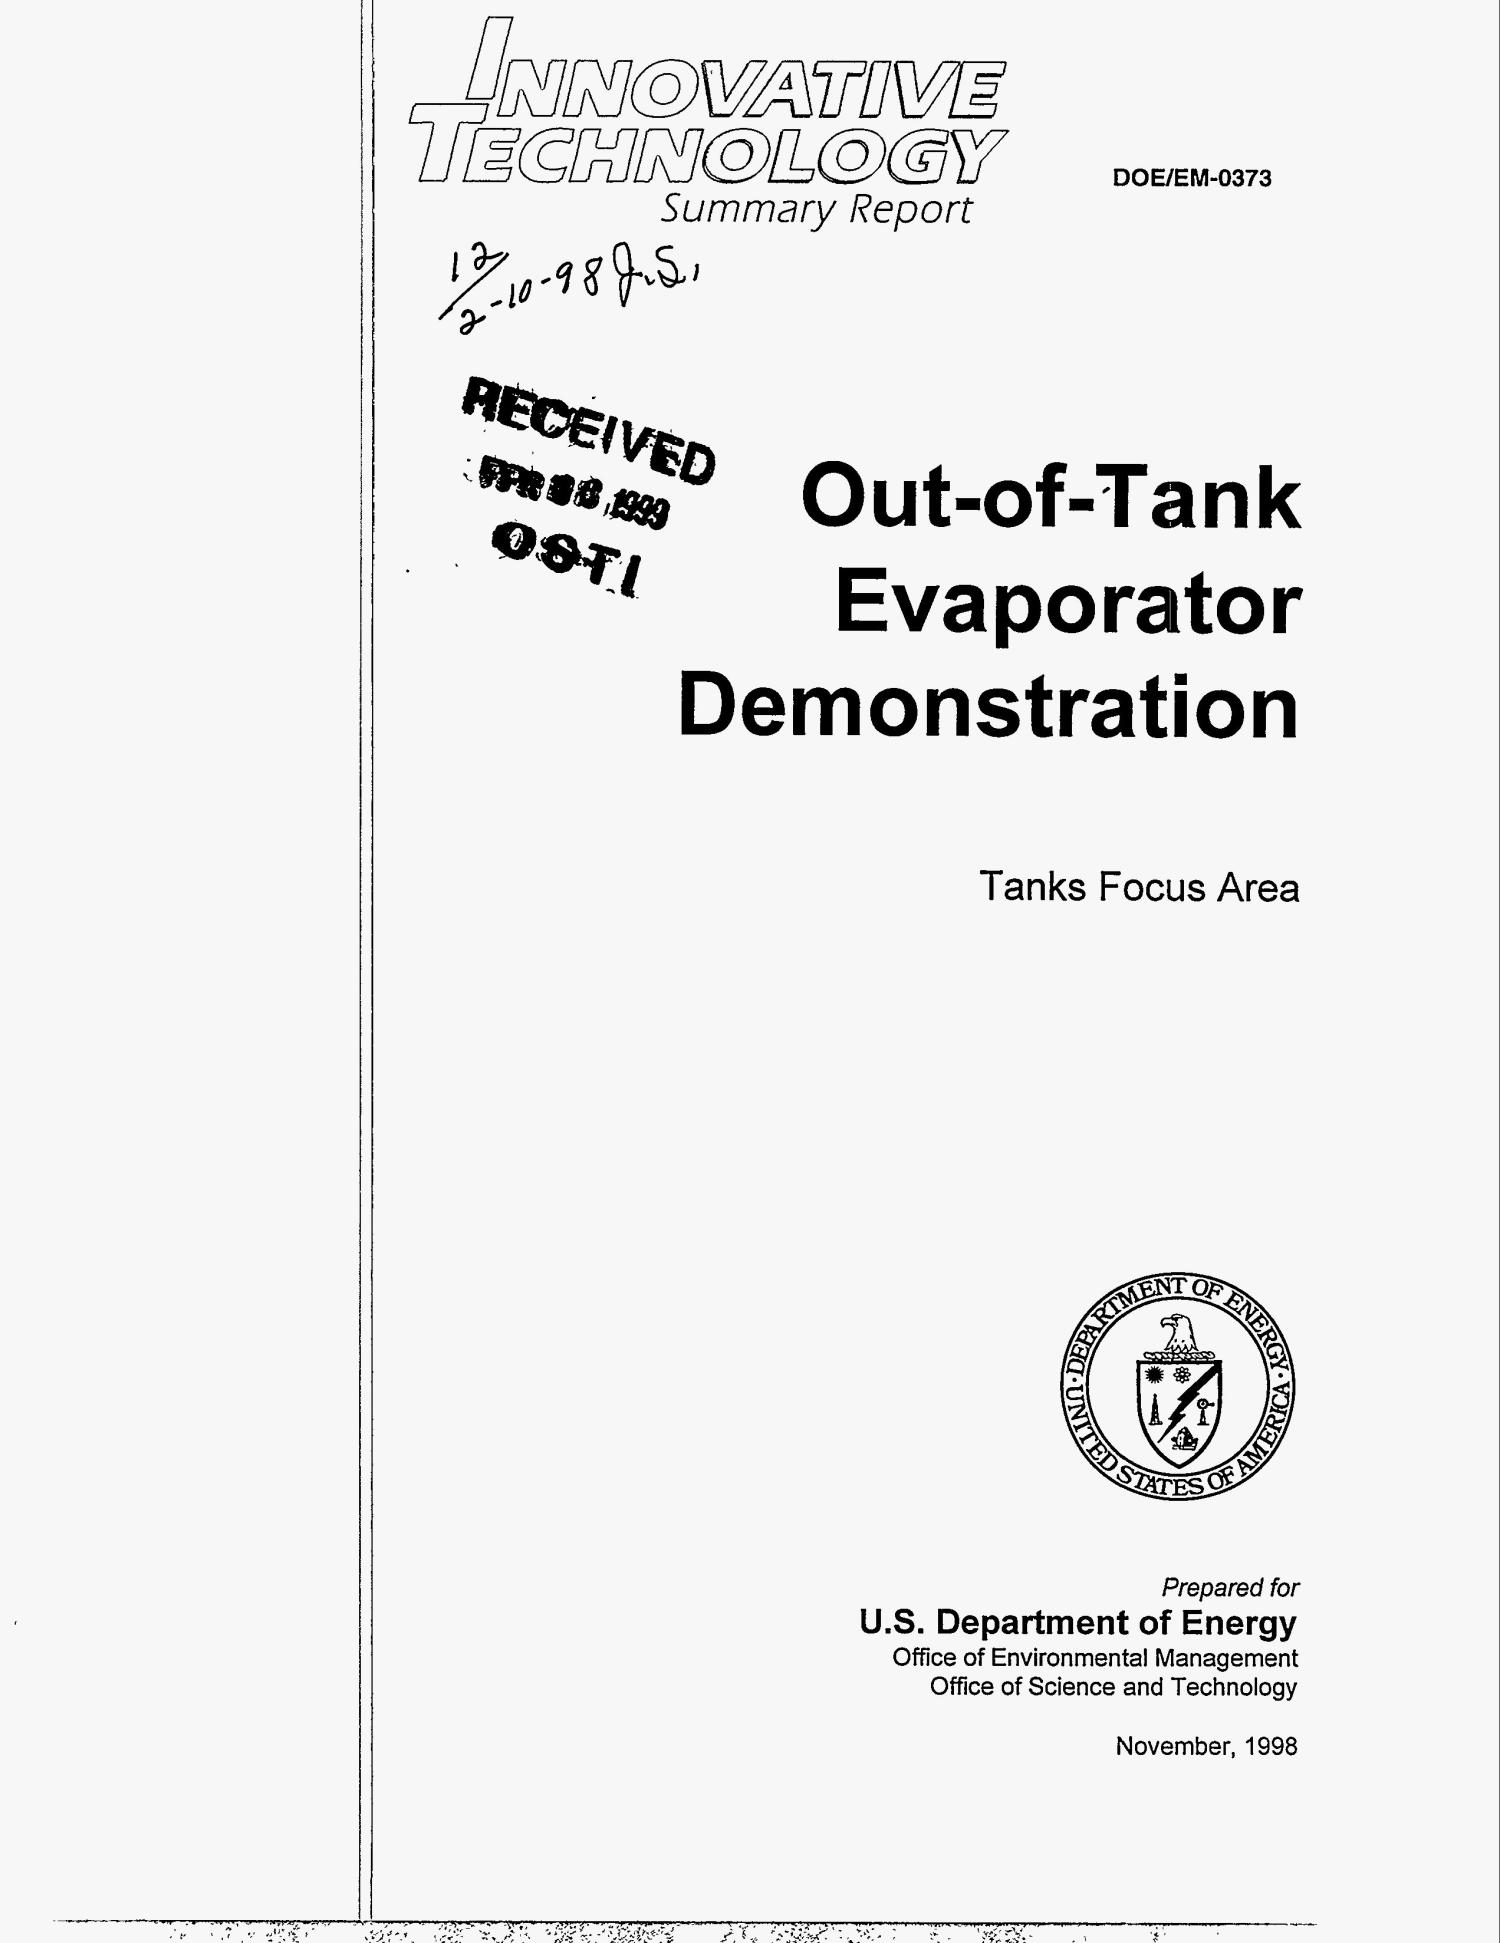 Out-of-tank evaporator demonstration: Tanks focus area                                                                                                      [Sequence #]: 1 of 25